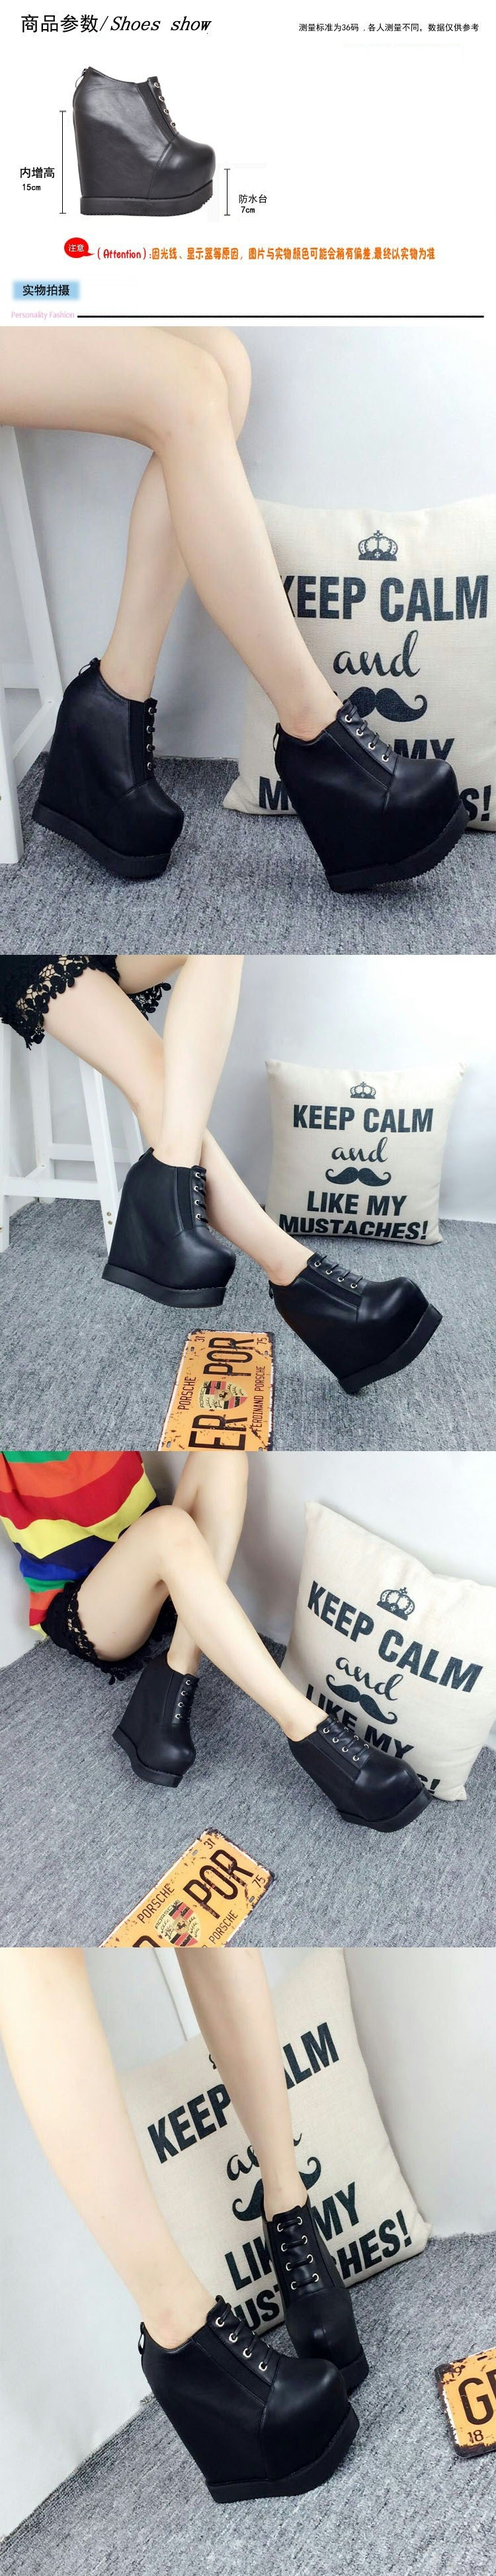 Korean Fashion Increase Height Motorcycle Boots 2016 New Platform High Heels Shoes Office Black Wedge Ankle Booties Women